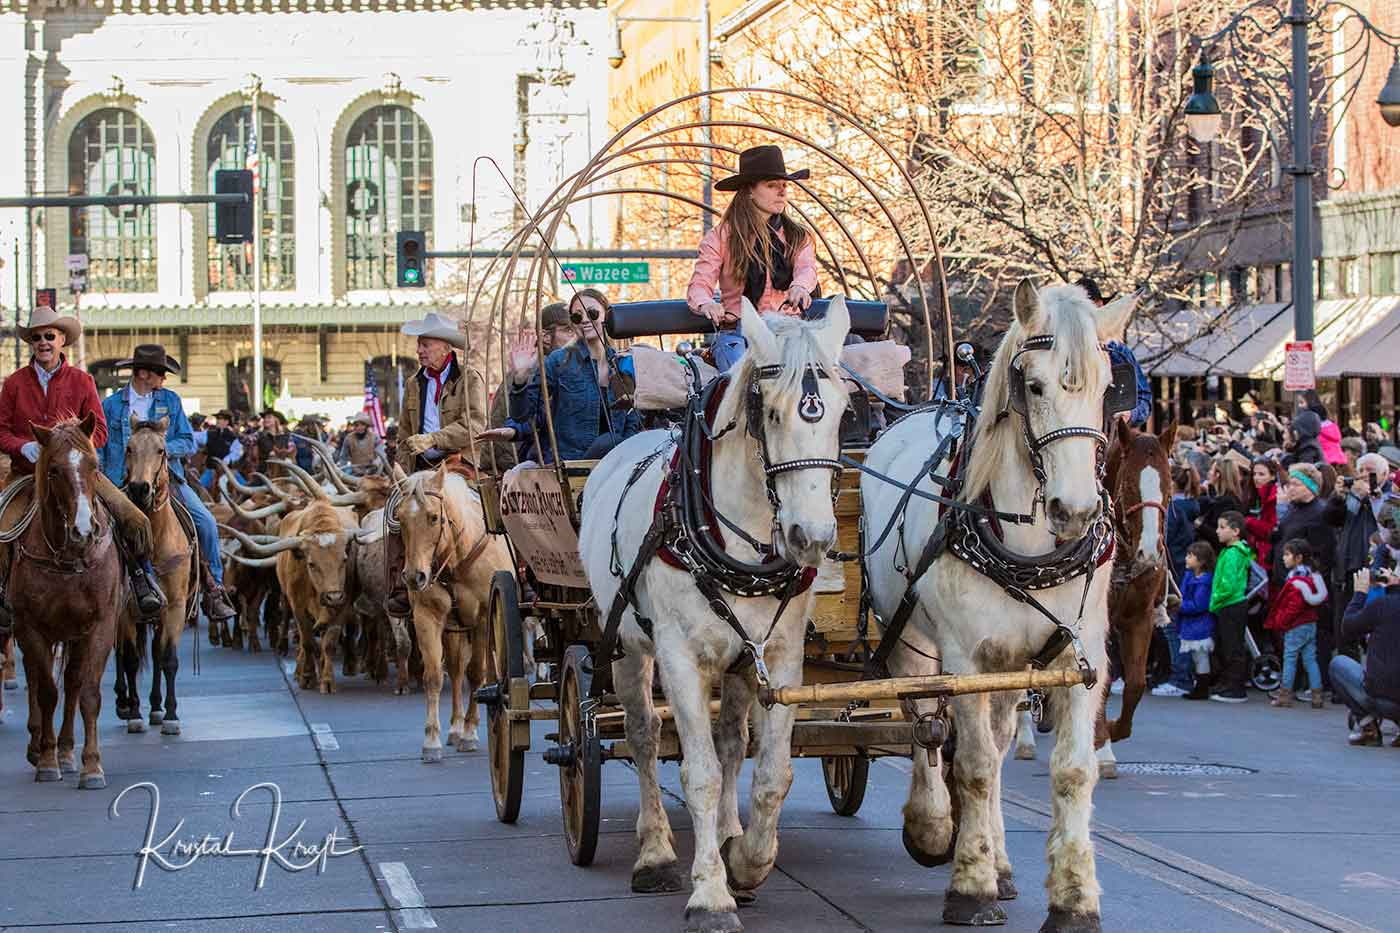 National Western Stock Show Parade begins with horses pulling a wagon and Texas Long Horn steer walking down Denver's 17th Street